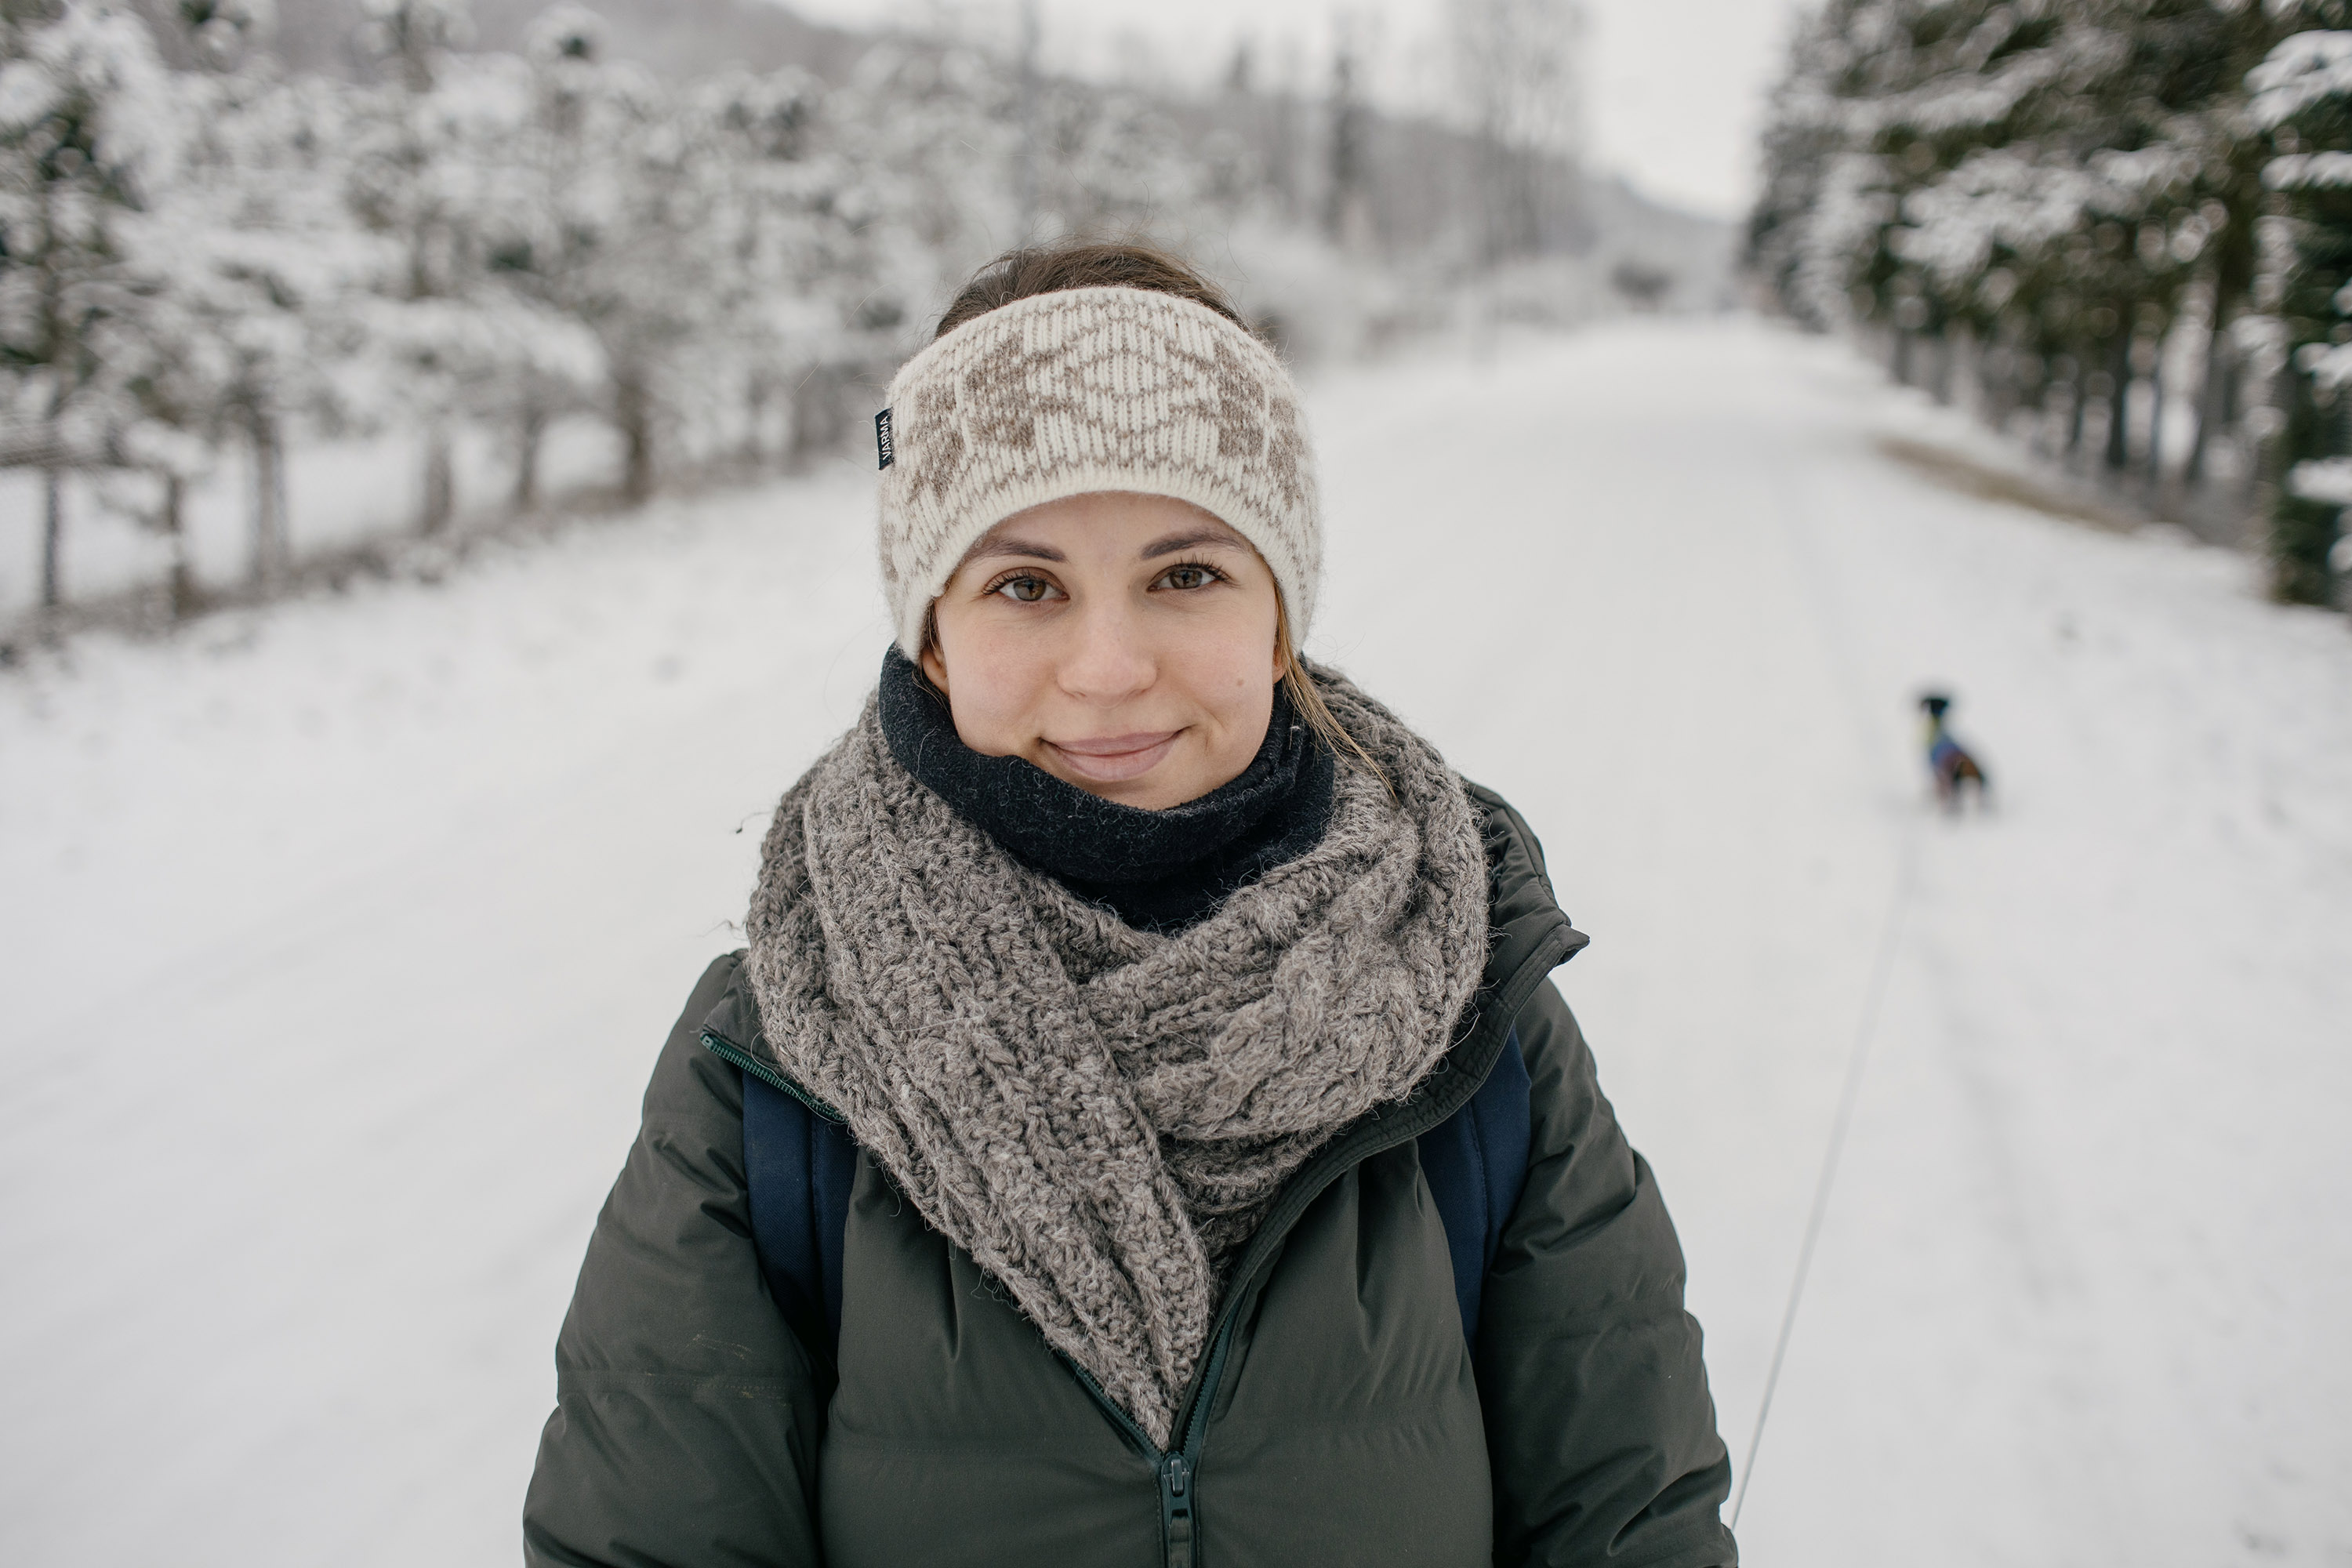 Portrait on the snowy road